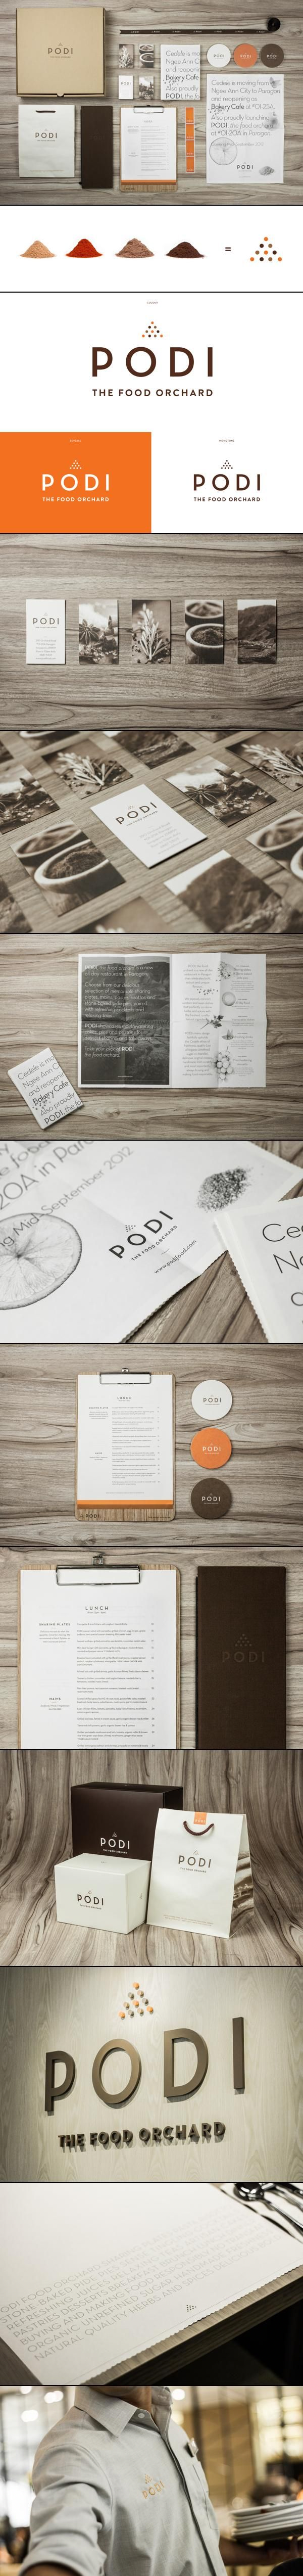 PODI | #stationary #corporate #design #corporatedesign #identity #branding #marketing < repinned by www.BlickeDeeler.de | Take a look at www.LogoGestaltung-Hamburg.de